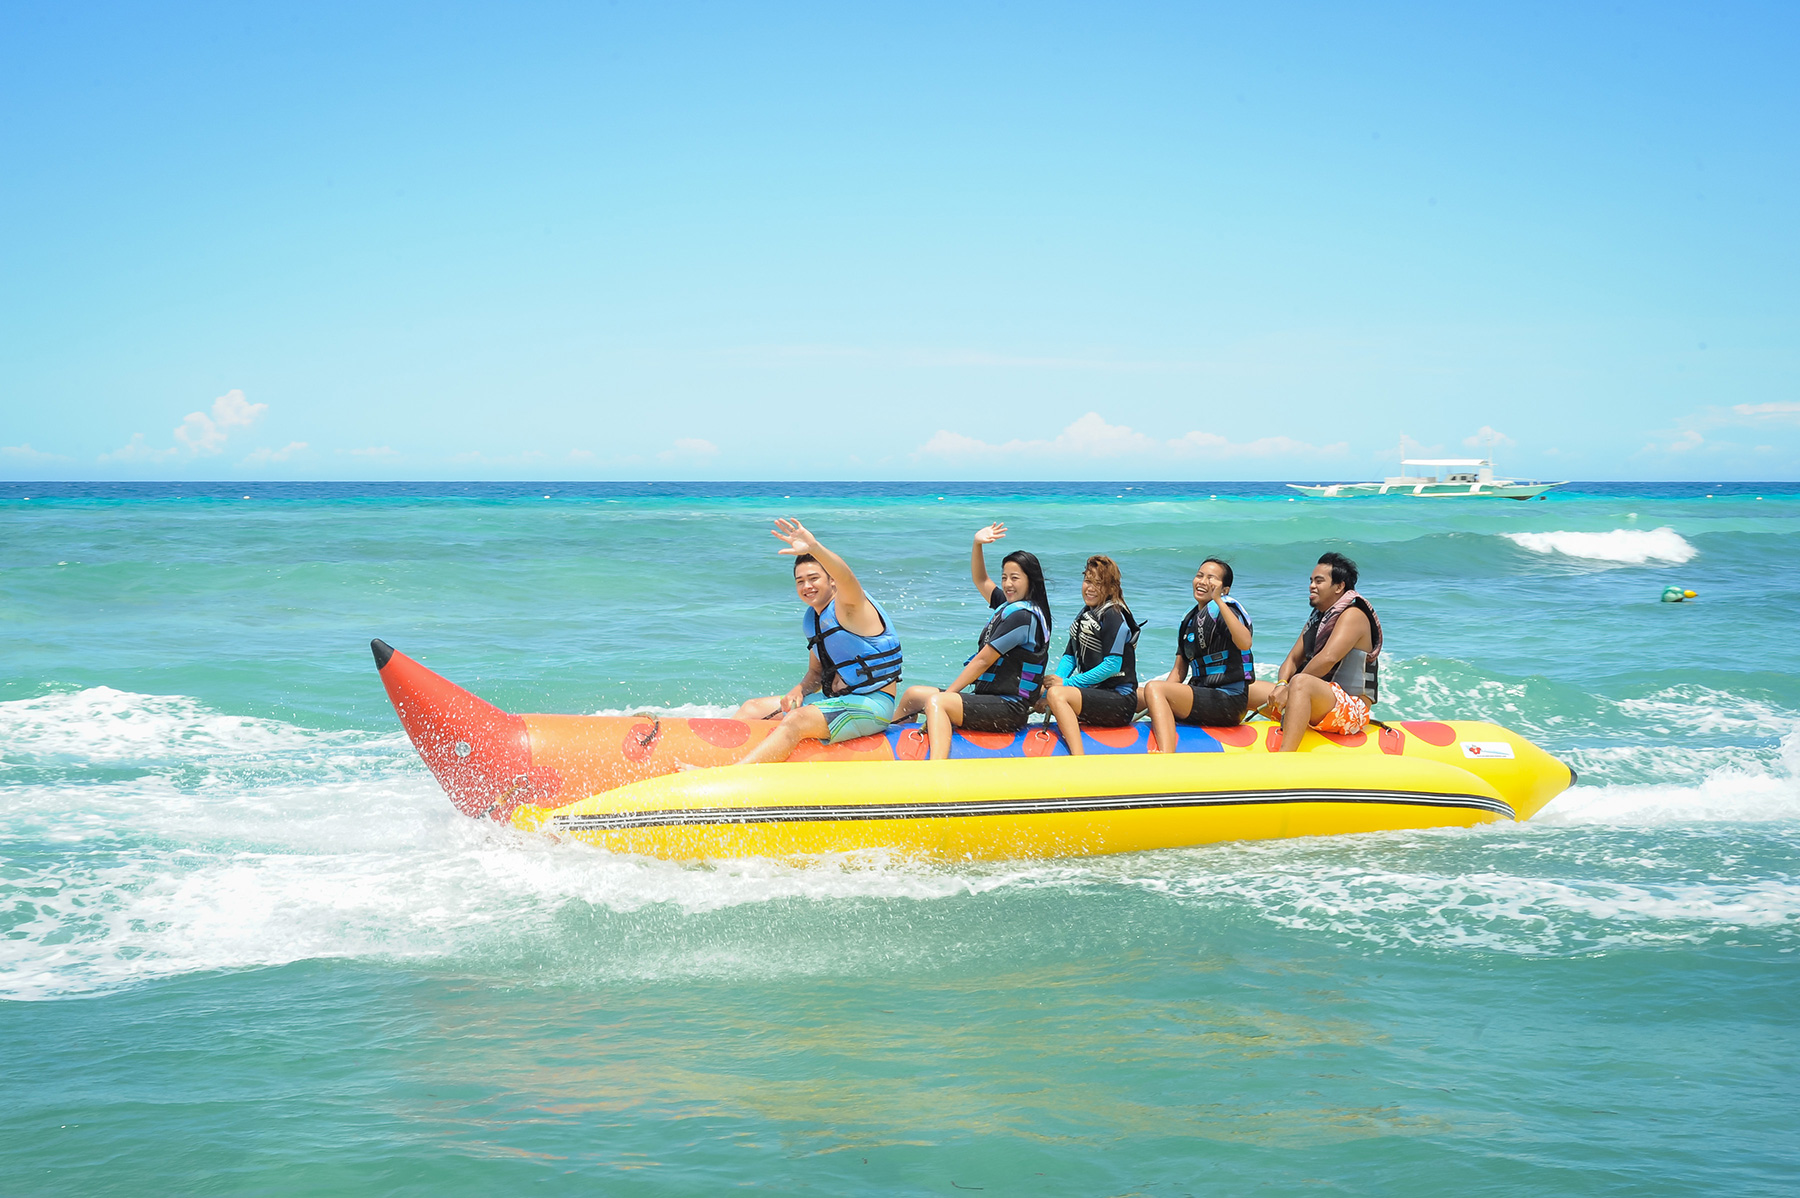 Five travellers enjoying the banana boat ride offered by Bohol Beach Club